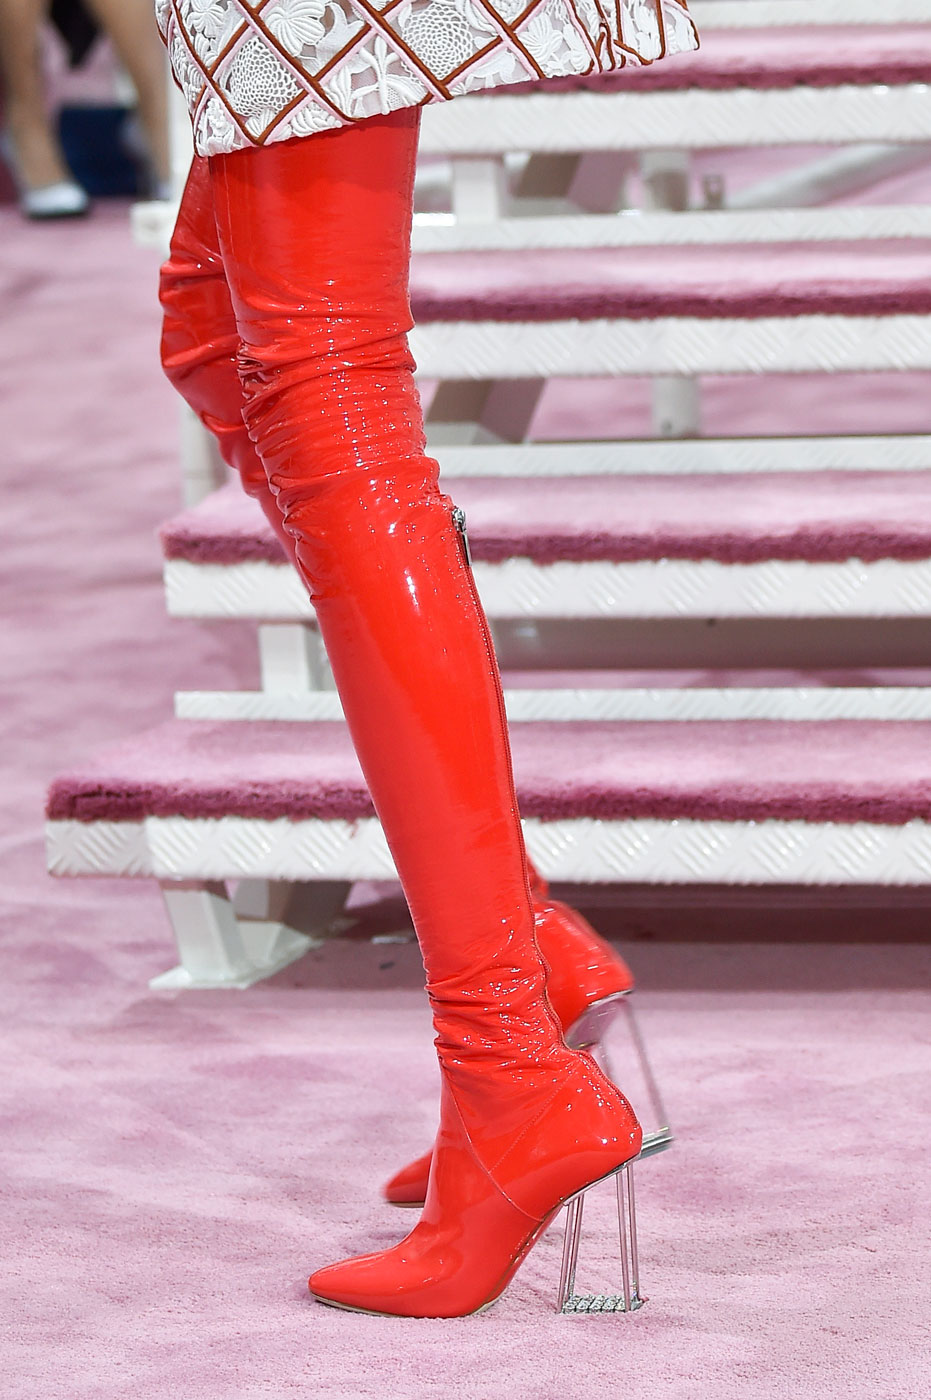 Christian-Dior-fashion-runway-show-close-ups-haute-couture-paris-spring-summer-2015-the-impression-086